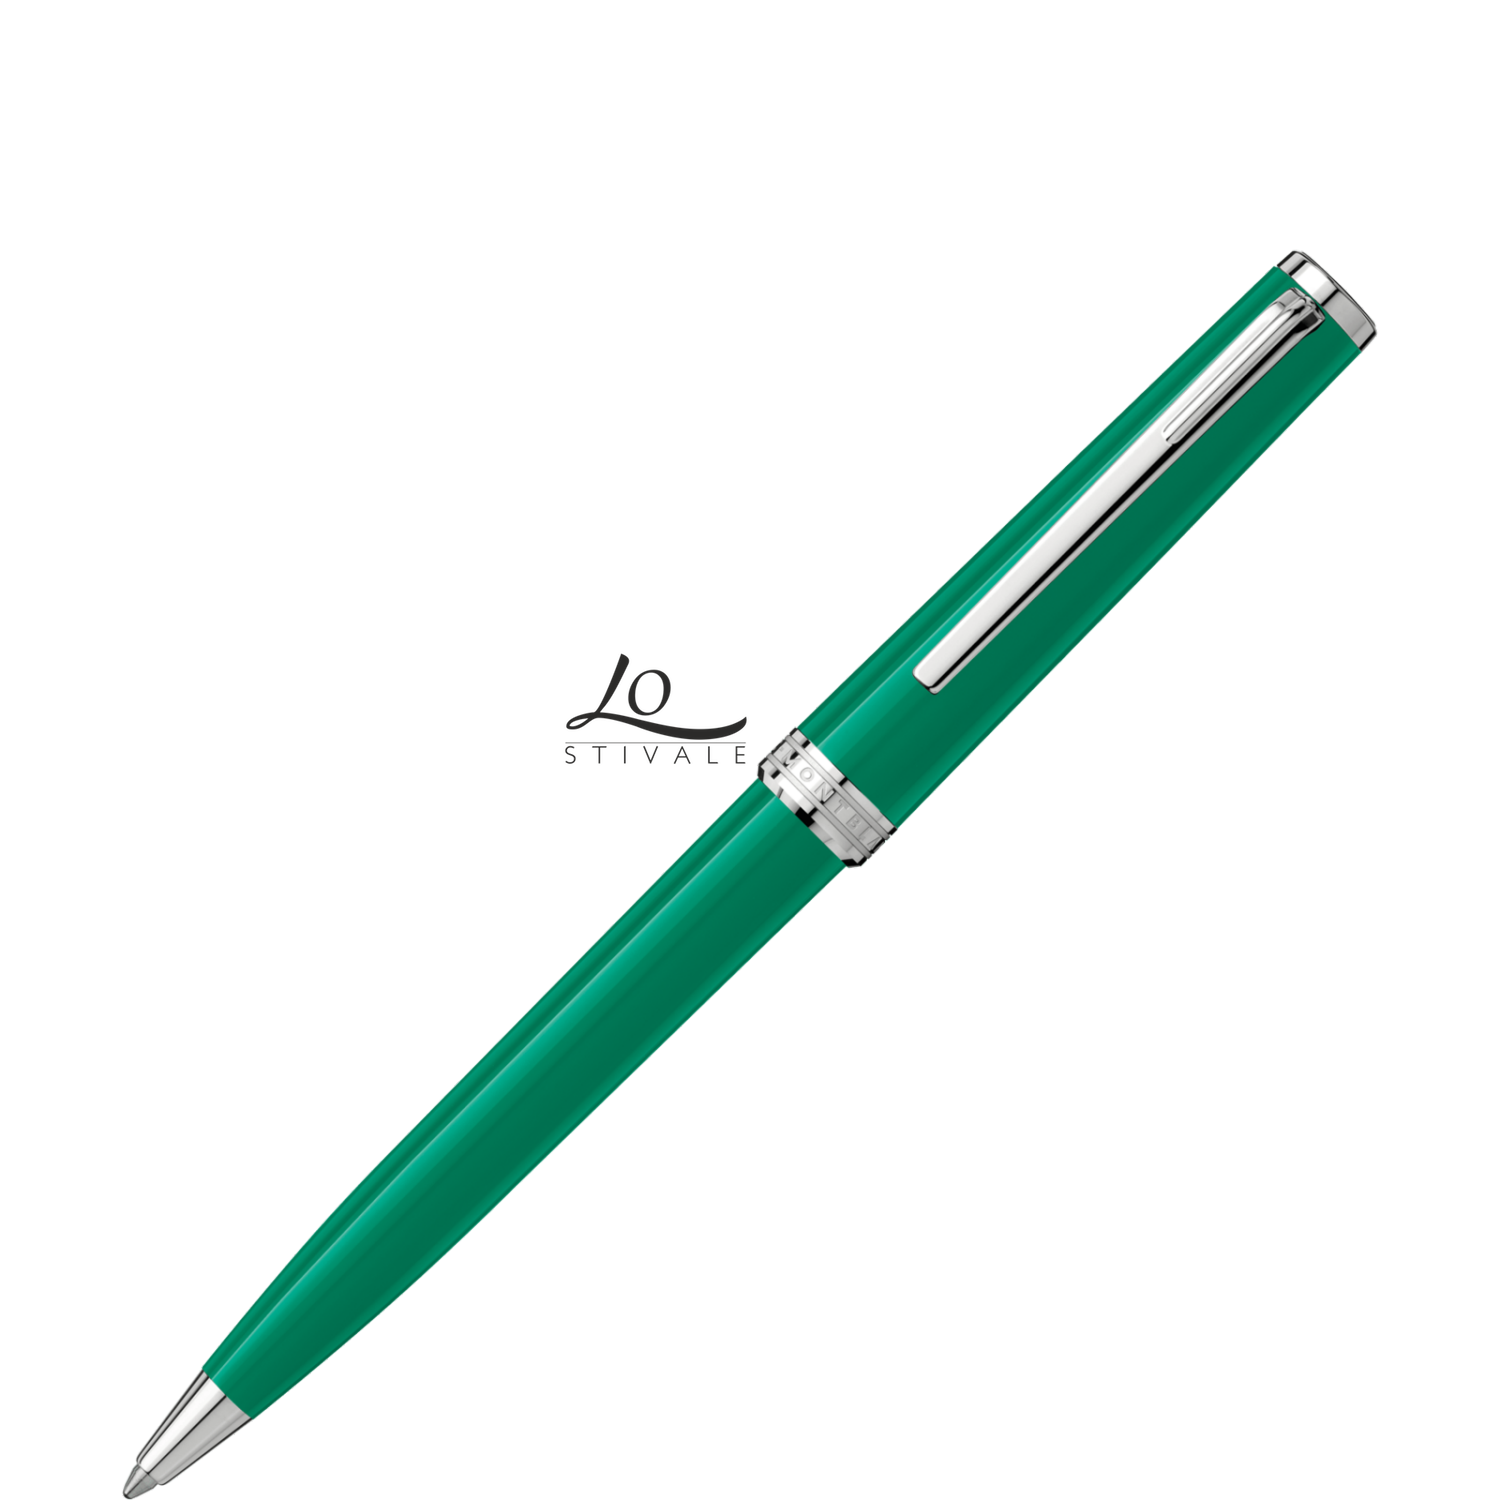 117661.lostivale.montblanc.pix.green_emerald.lo